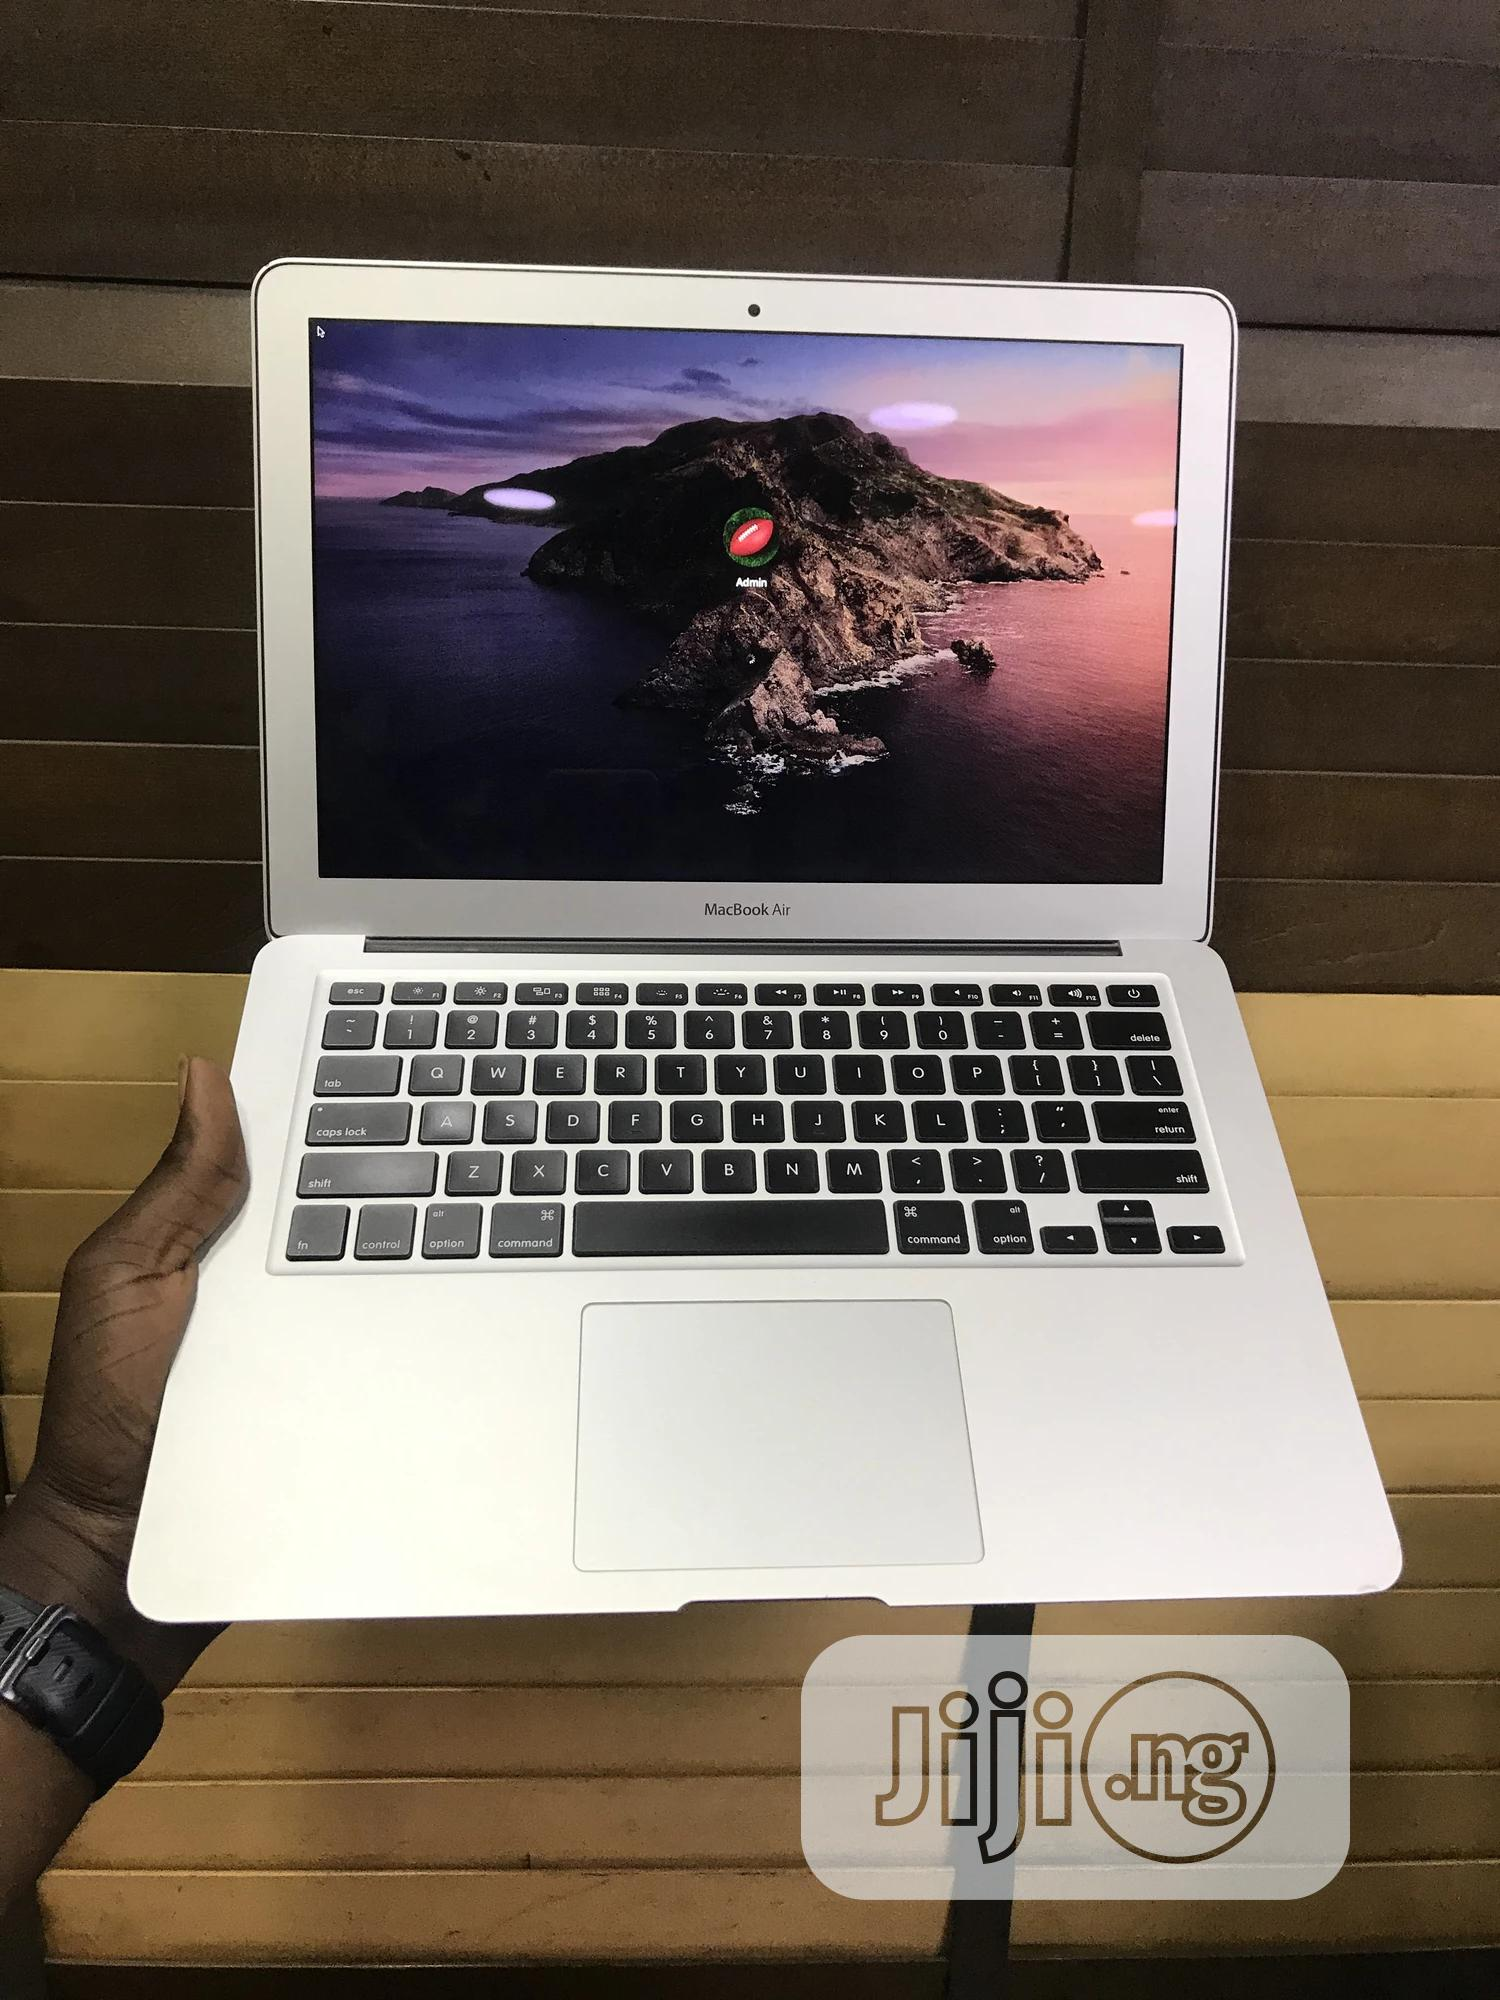 Laptop Apple MacBook Air 2015 8GB Intel Core i7 SSD 512GB | Laptops & Computers for sale in Ibadan, Oyo State, Nigeria